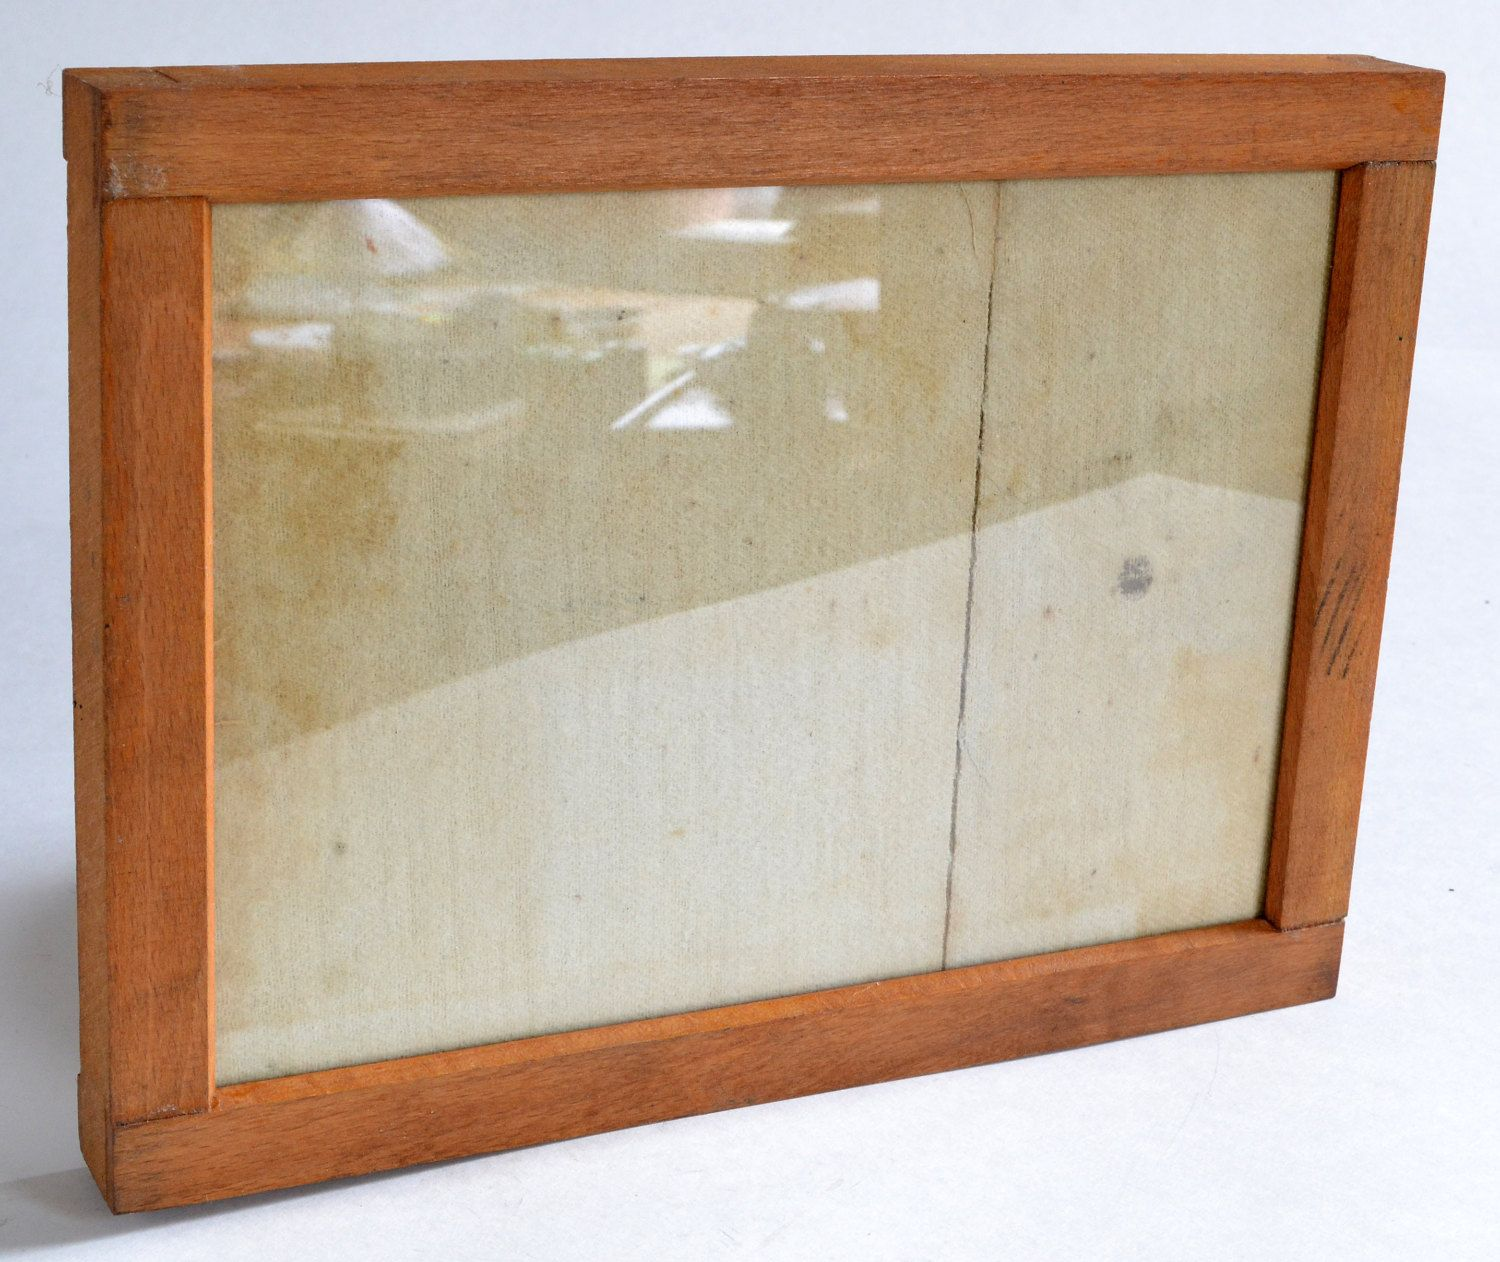 5x7 #Kodak #Contact Print #Frame, Pat. 1917, View more on the LINK ...